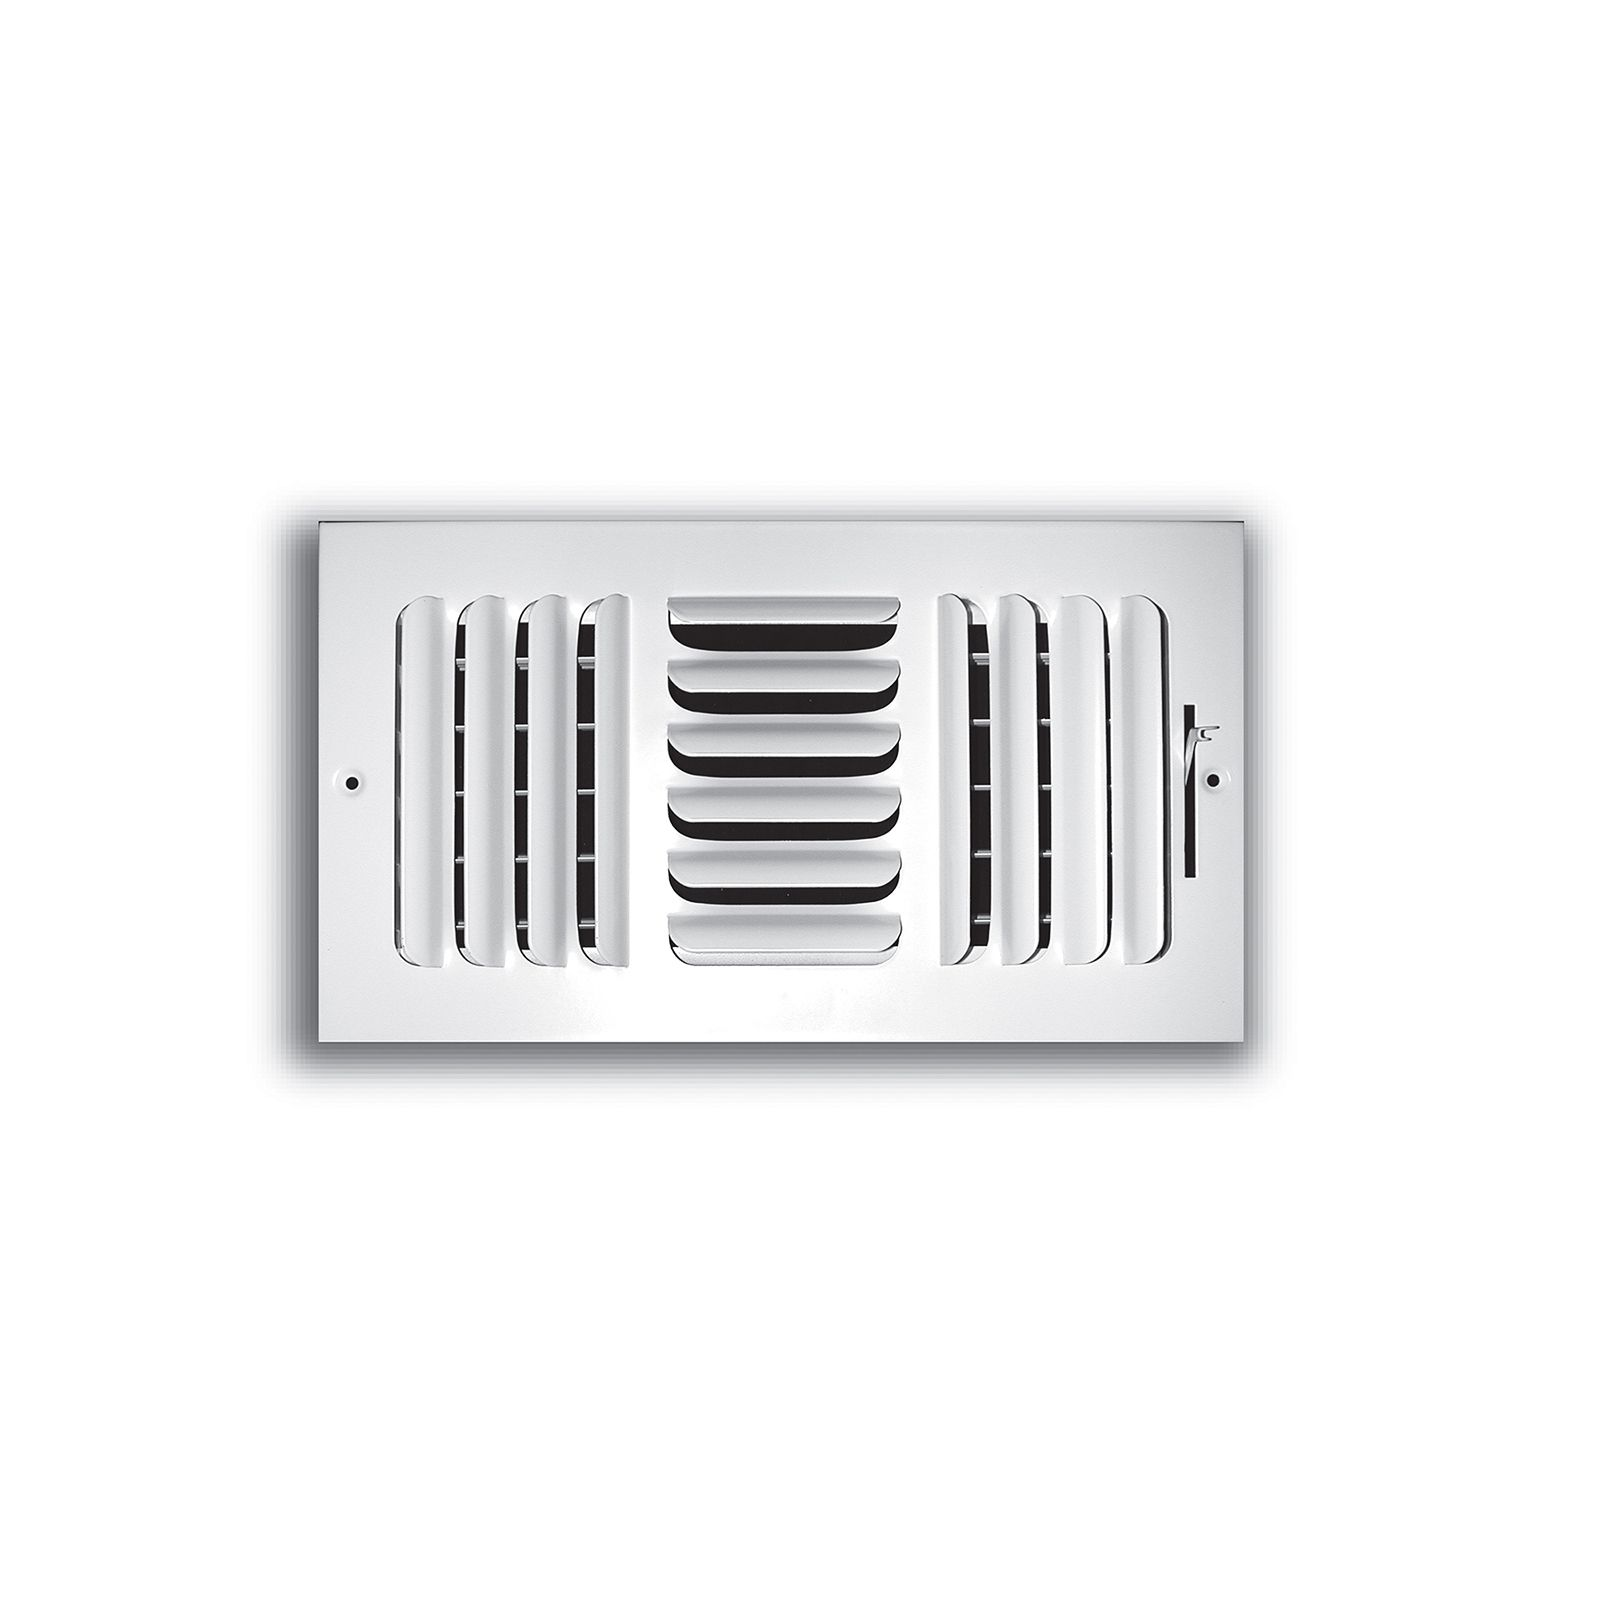 "TRUaire 403M 12X04 - Fixed Curved Blade Wall/Ceiling Register With Multi Shutter Damper, 3-Way, White, 12"" X 04"""